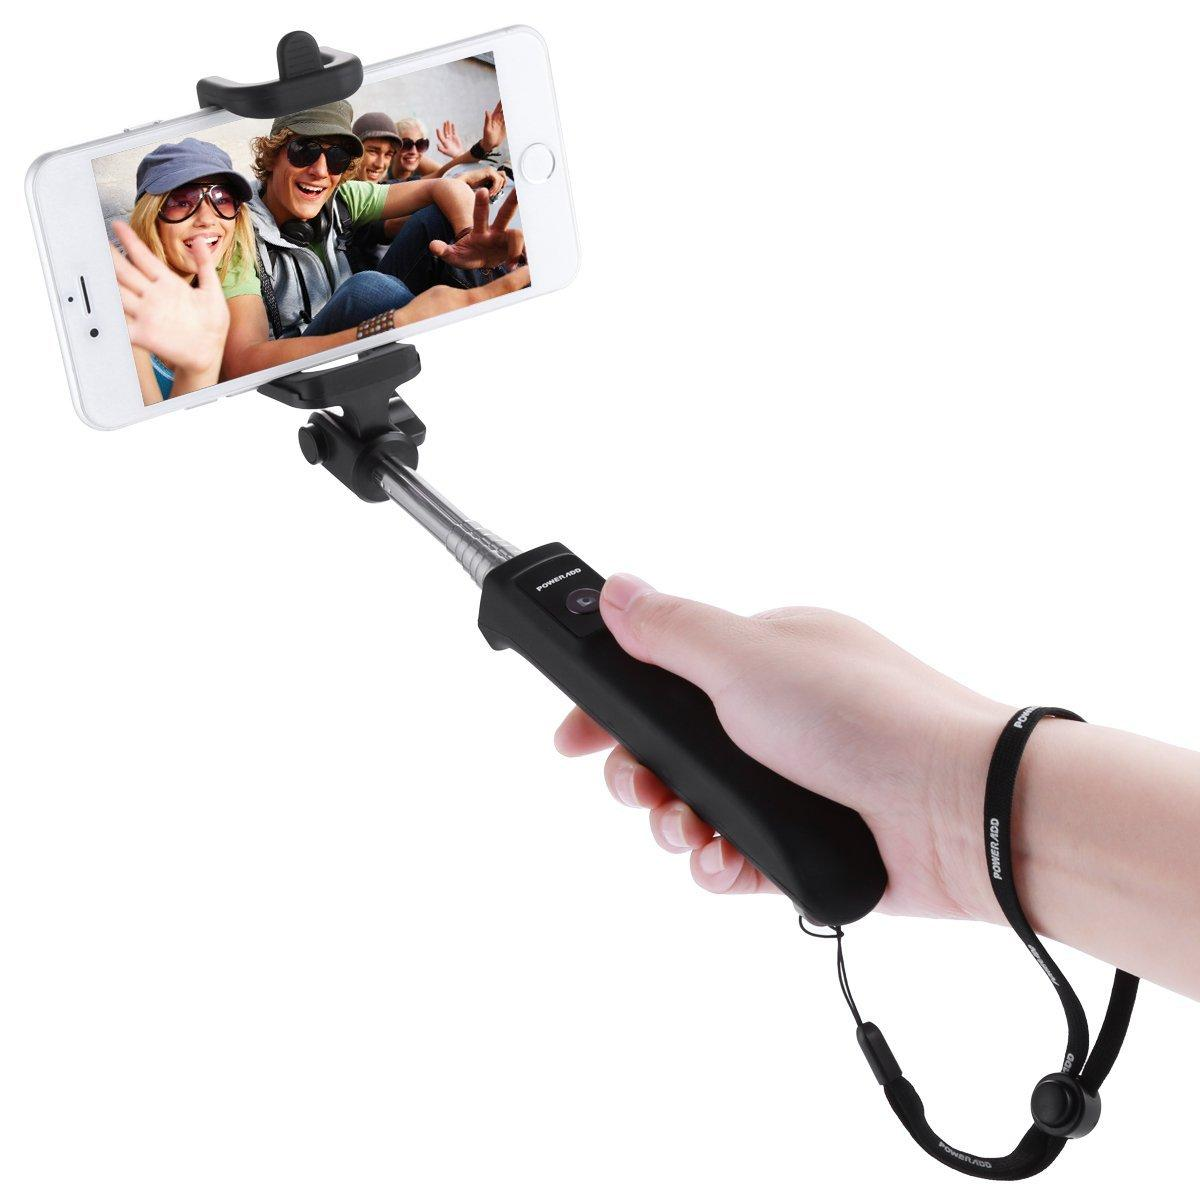 Poweradd 2nd Gen Bluetooth Selfie Stick Self-portrait Monopod with Built-in Remote Shutter and Adjustable Phone Holder